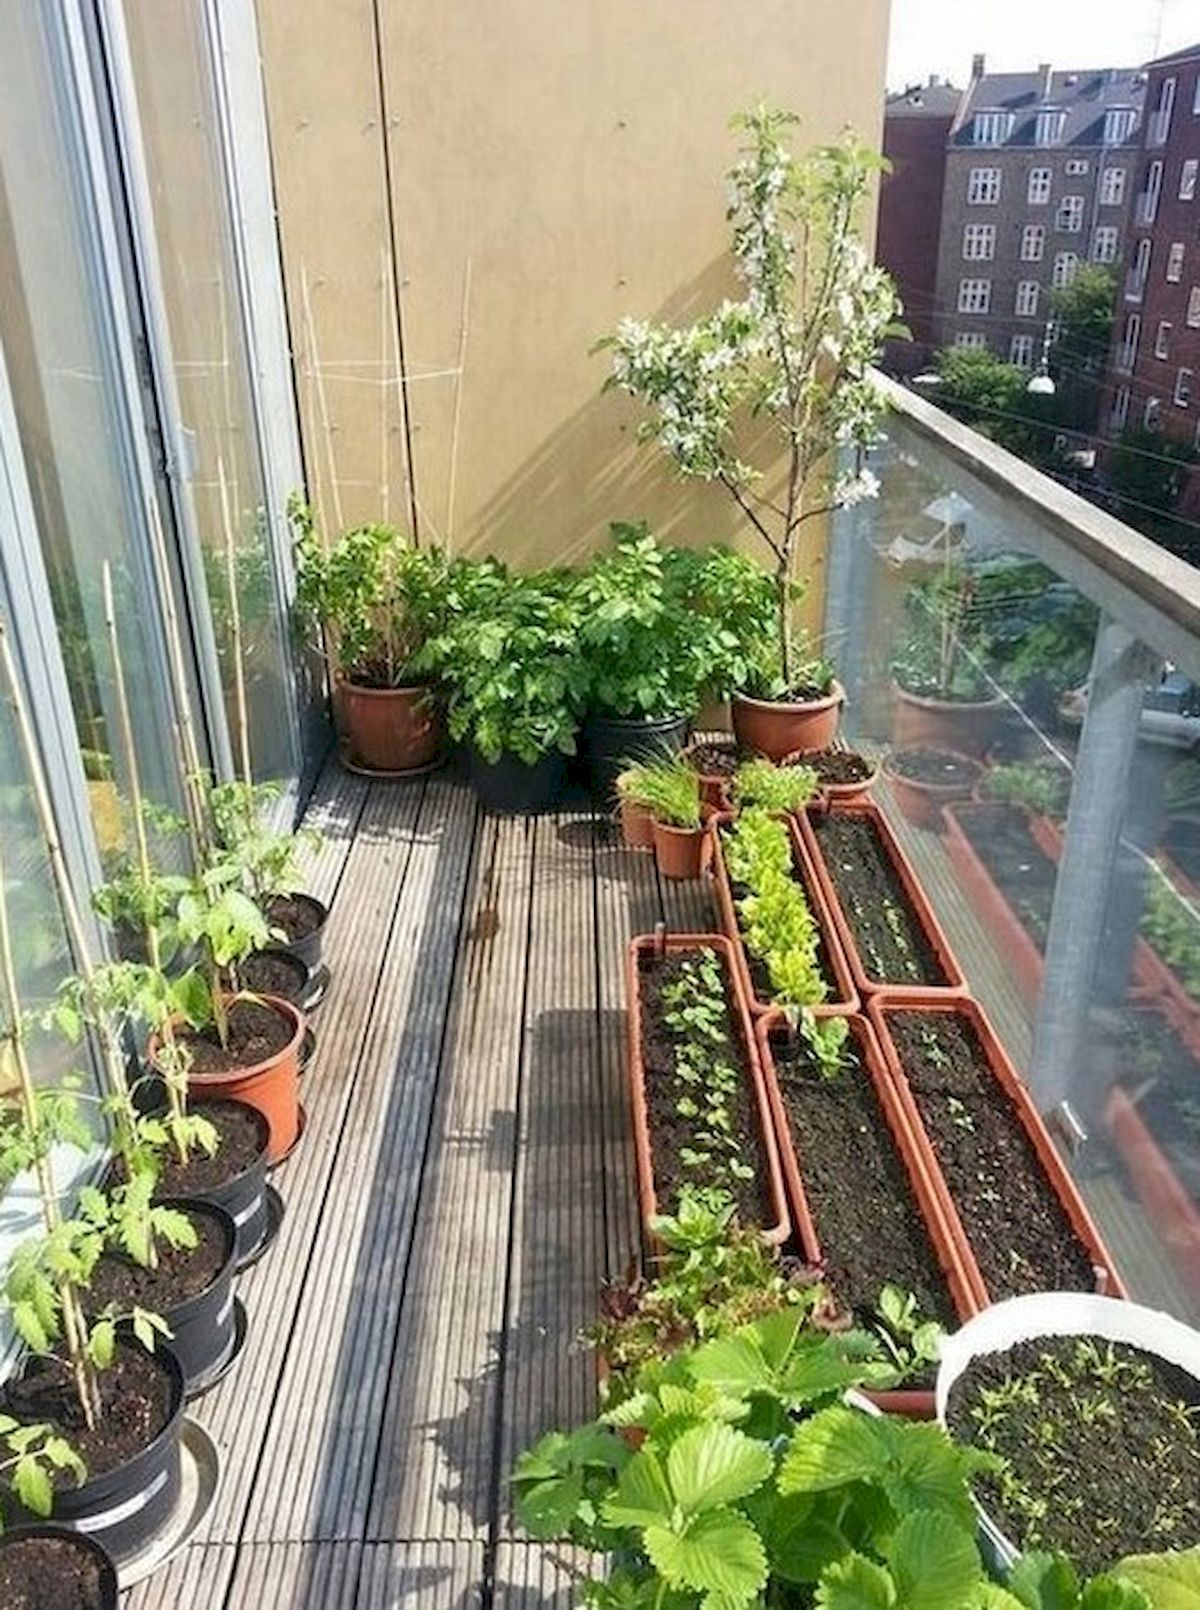 50 Inspiring Small Vegetable Garden Ideas (19)